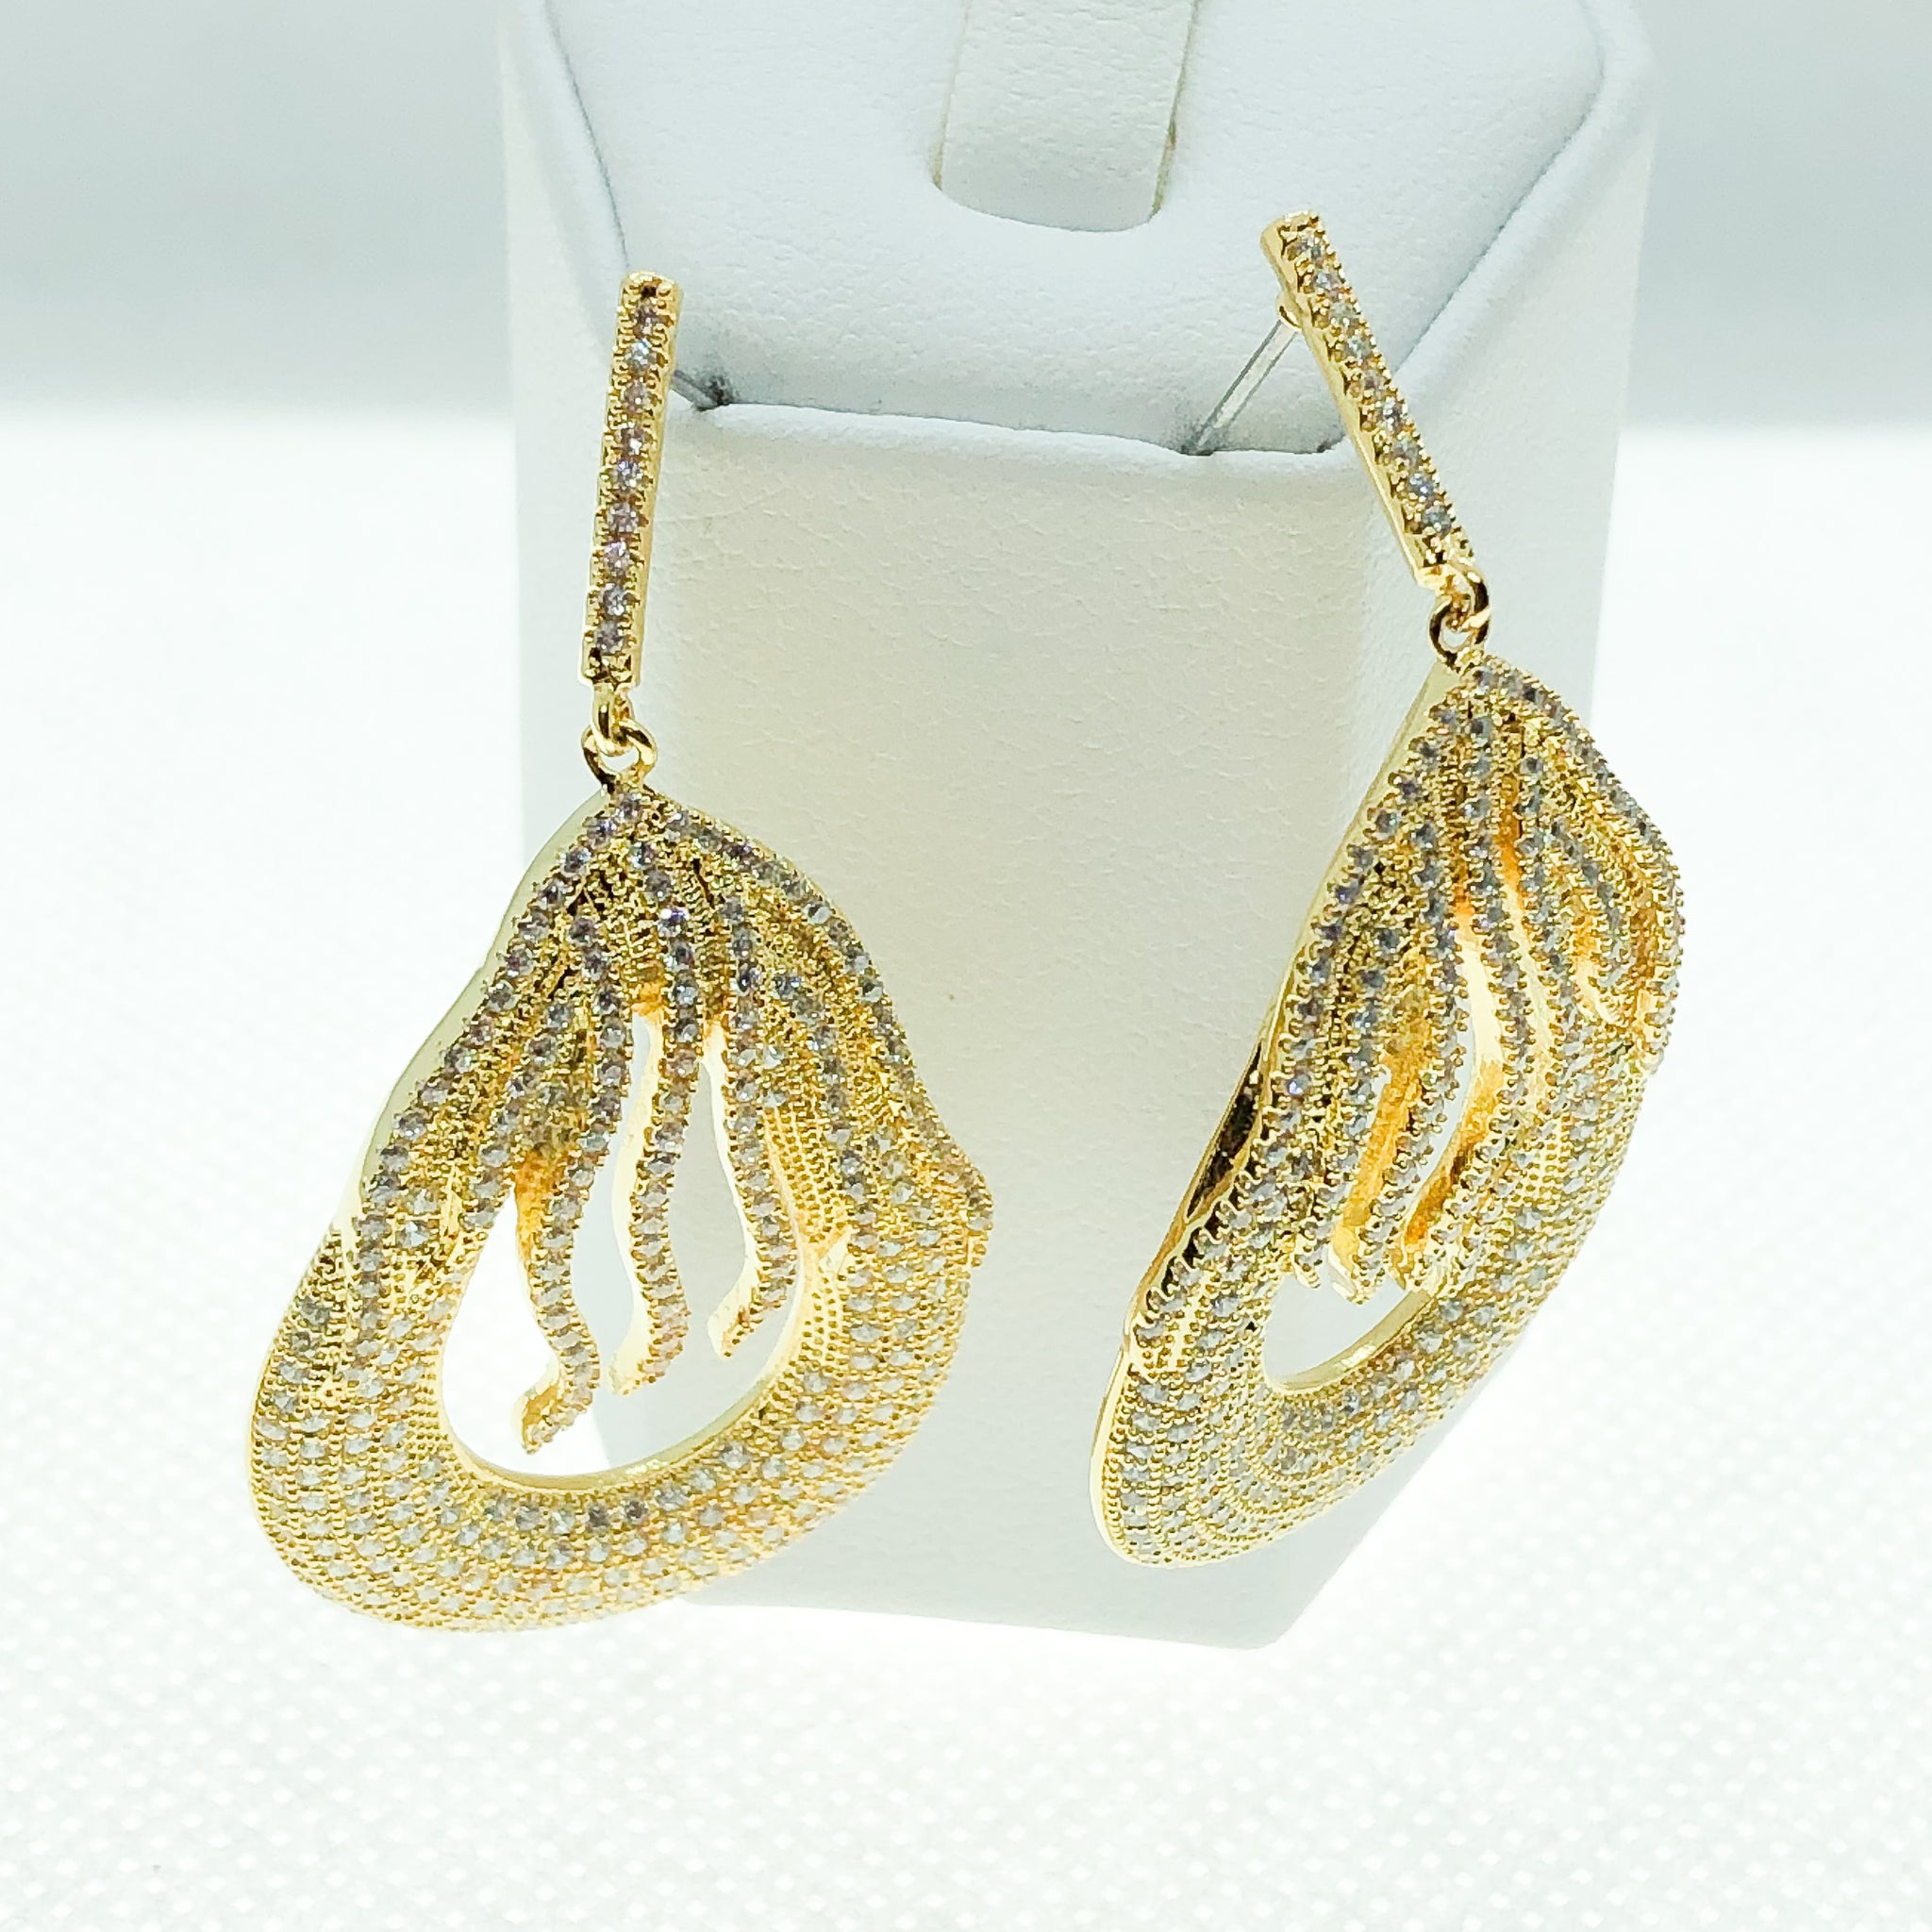 ID: E4851A Women Fashion Jewelry 18K Yellow Gold GF Diamonique Earrings Lady Engagement Wedding Drop Dangle